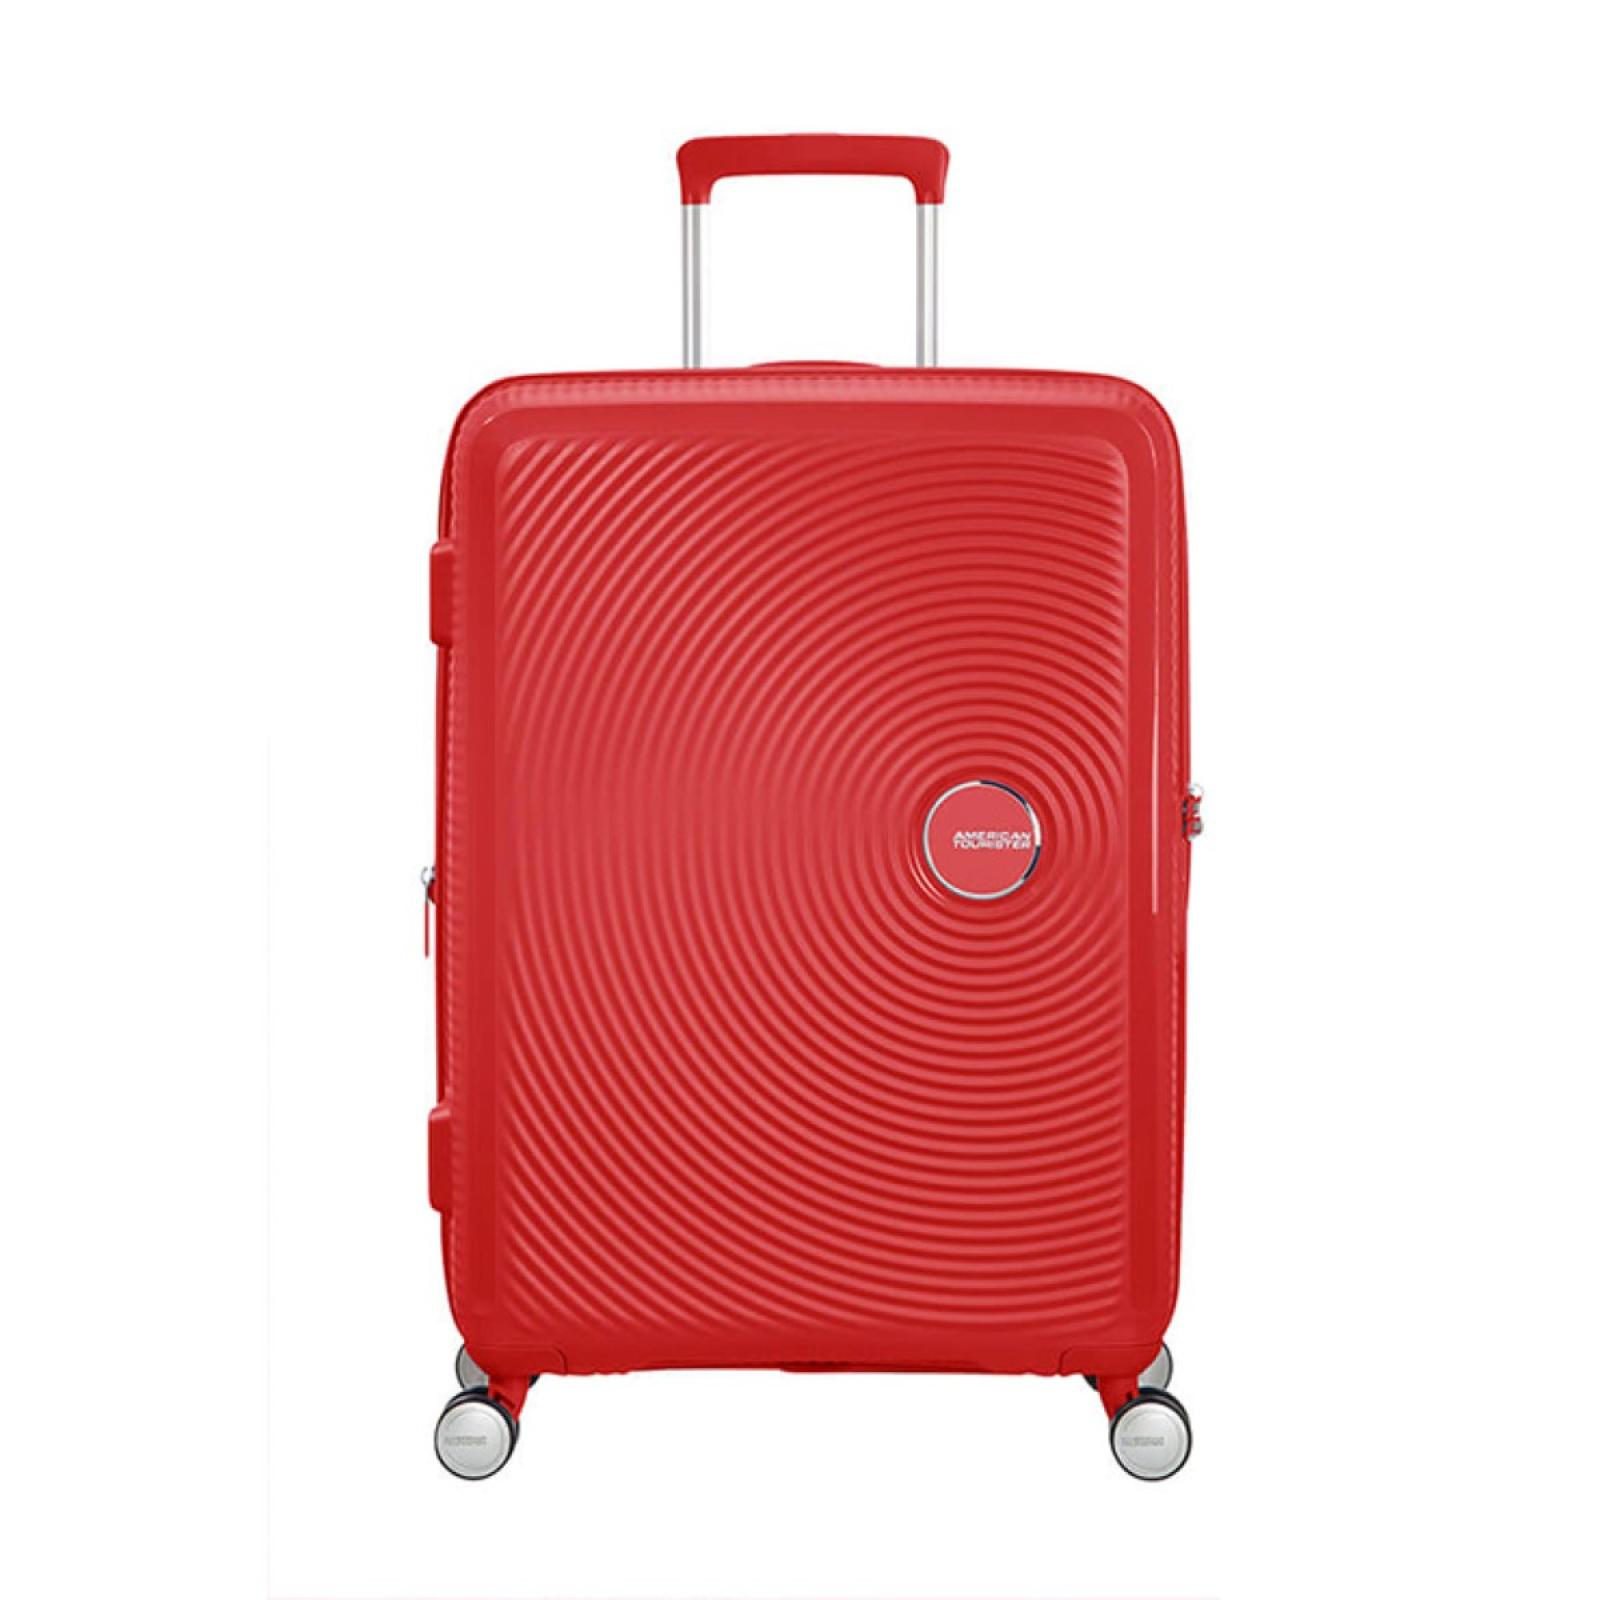 American Tourister Medium Trolley 67/24 Exp Soundbox Spinner - 1